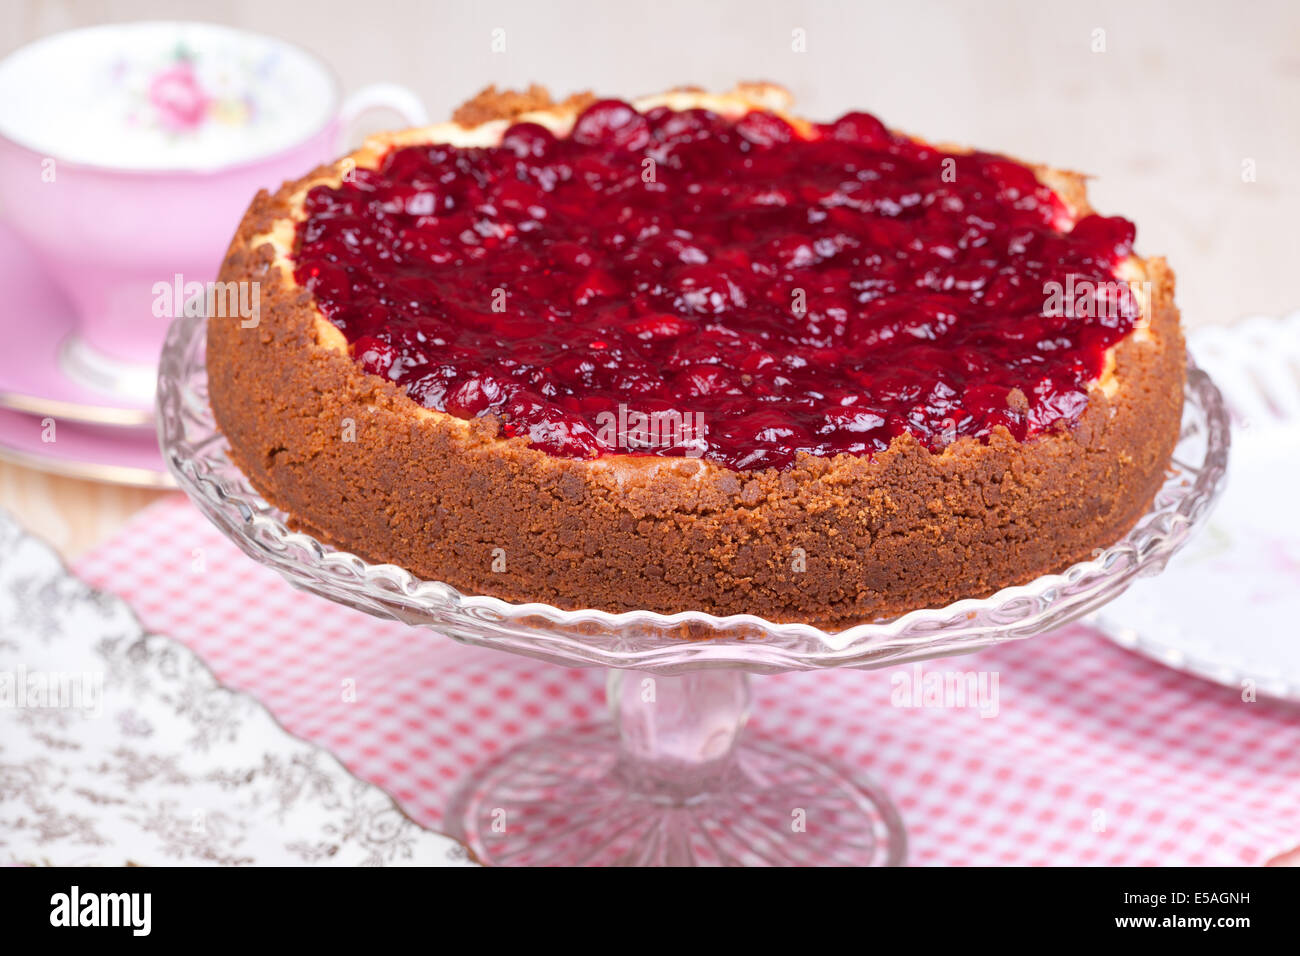 cheesecake with cherries on the table - Stock Image